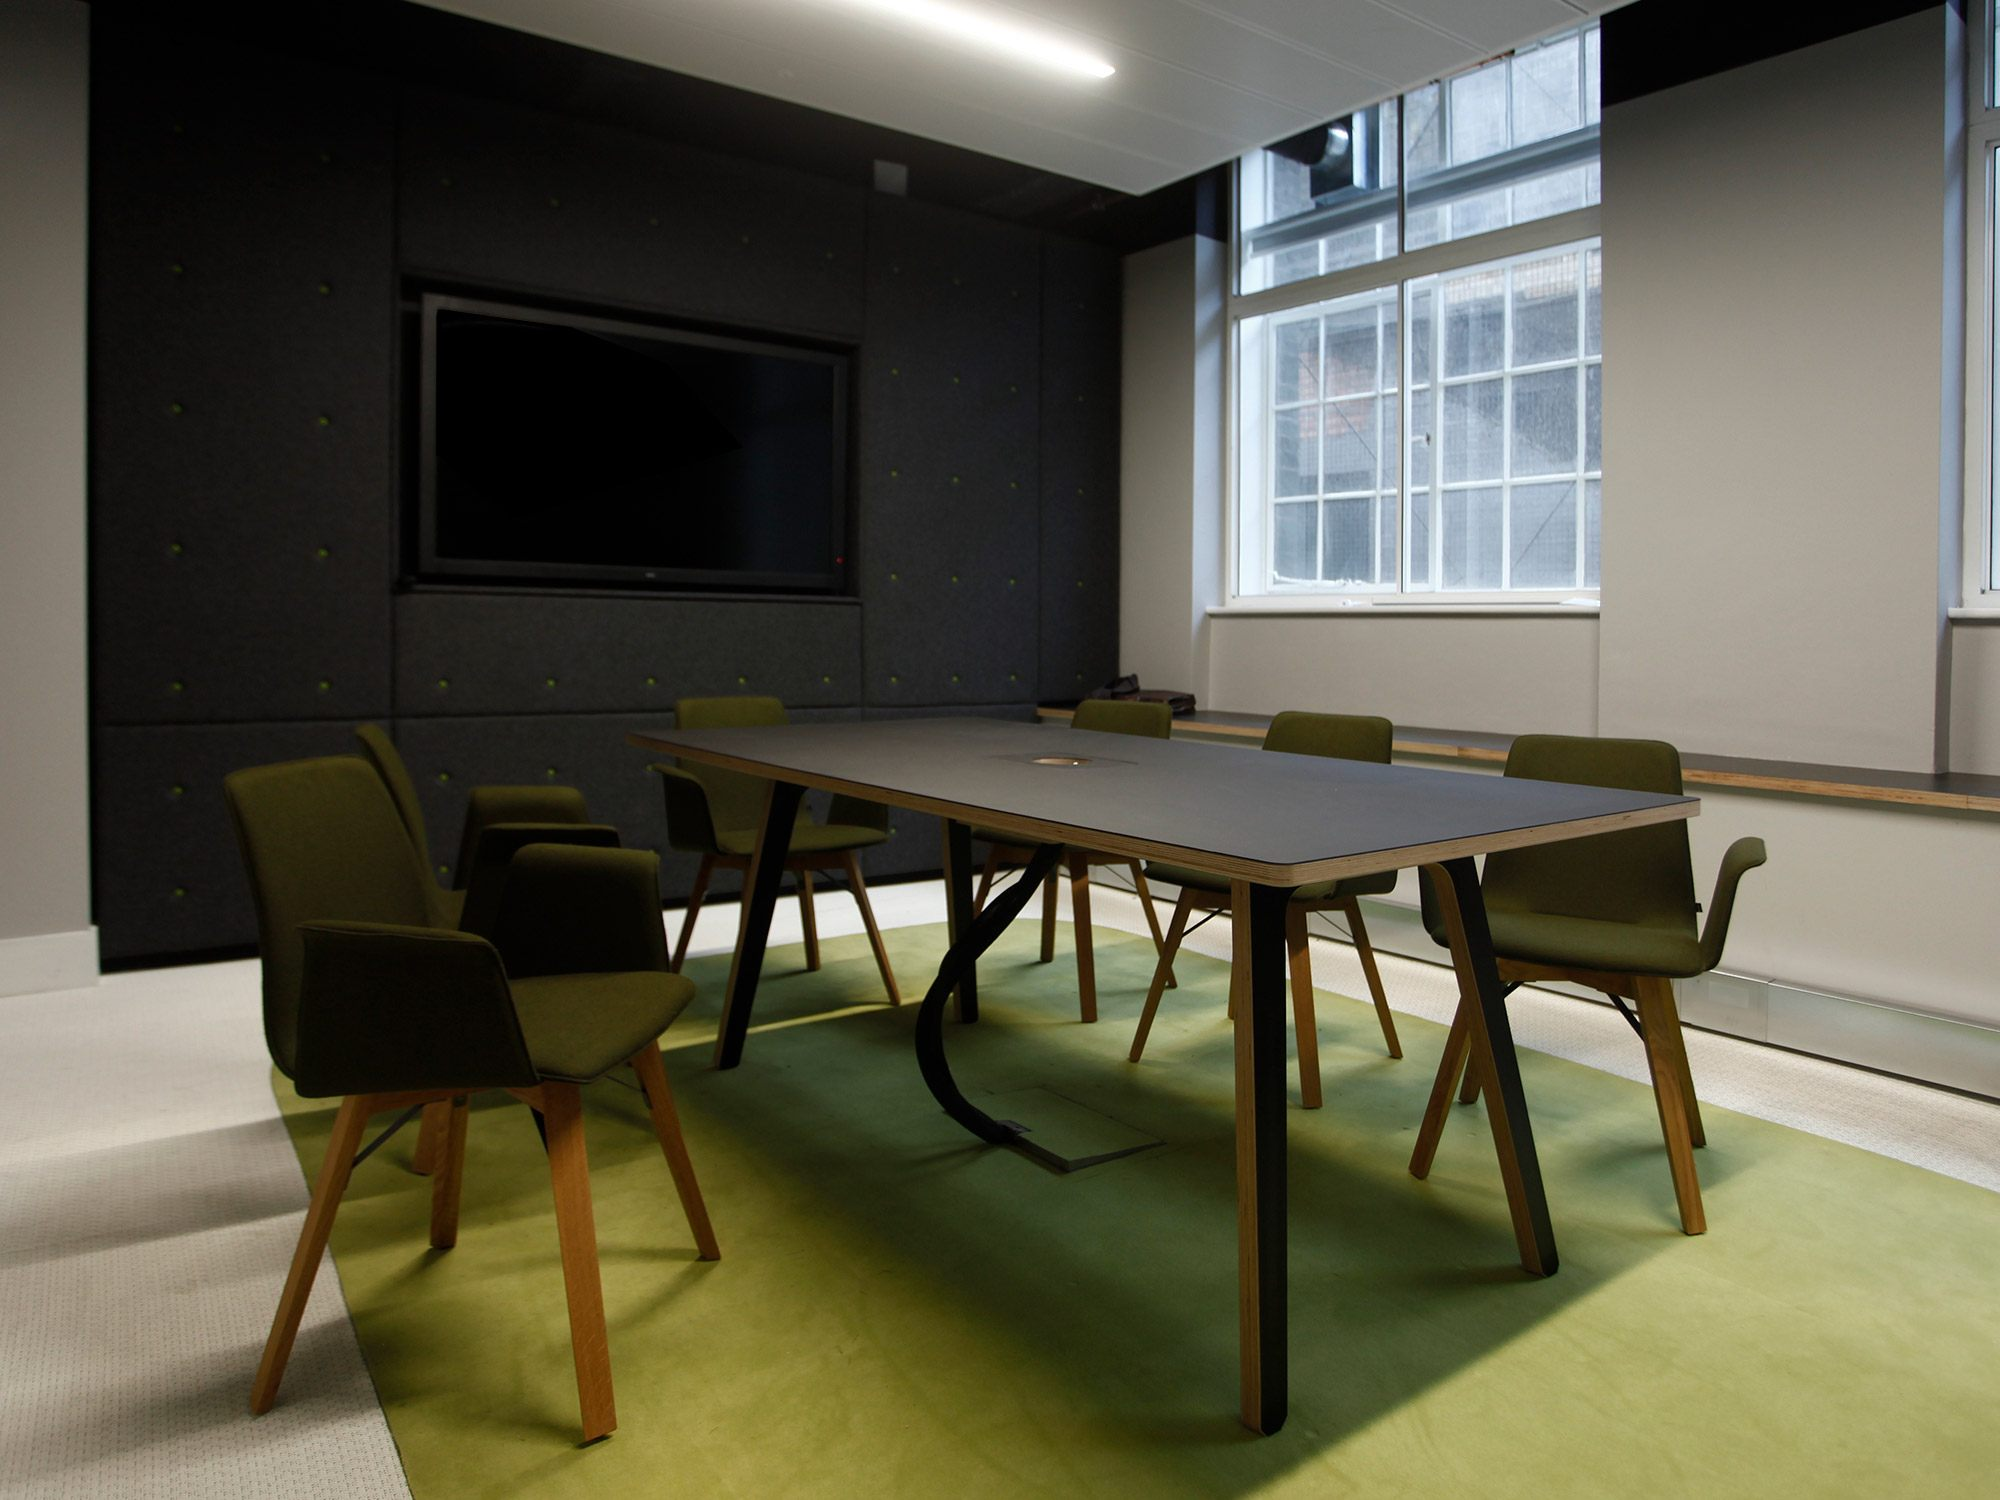 Workspace-Kingshaw-Table-ByALEX-1